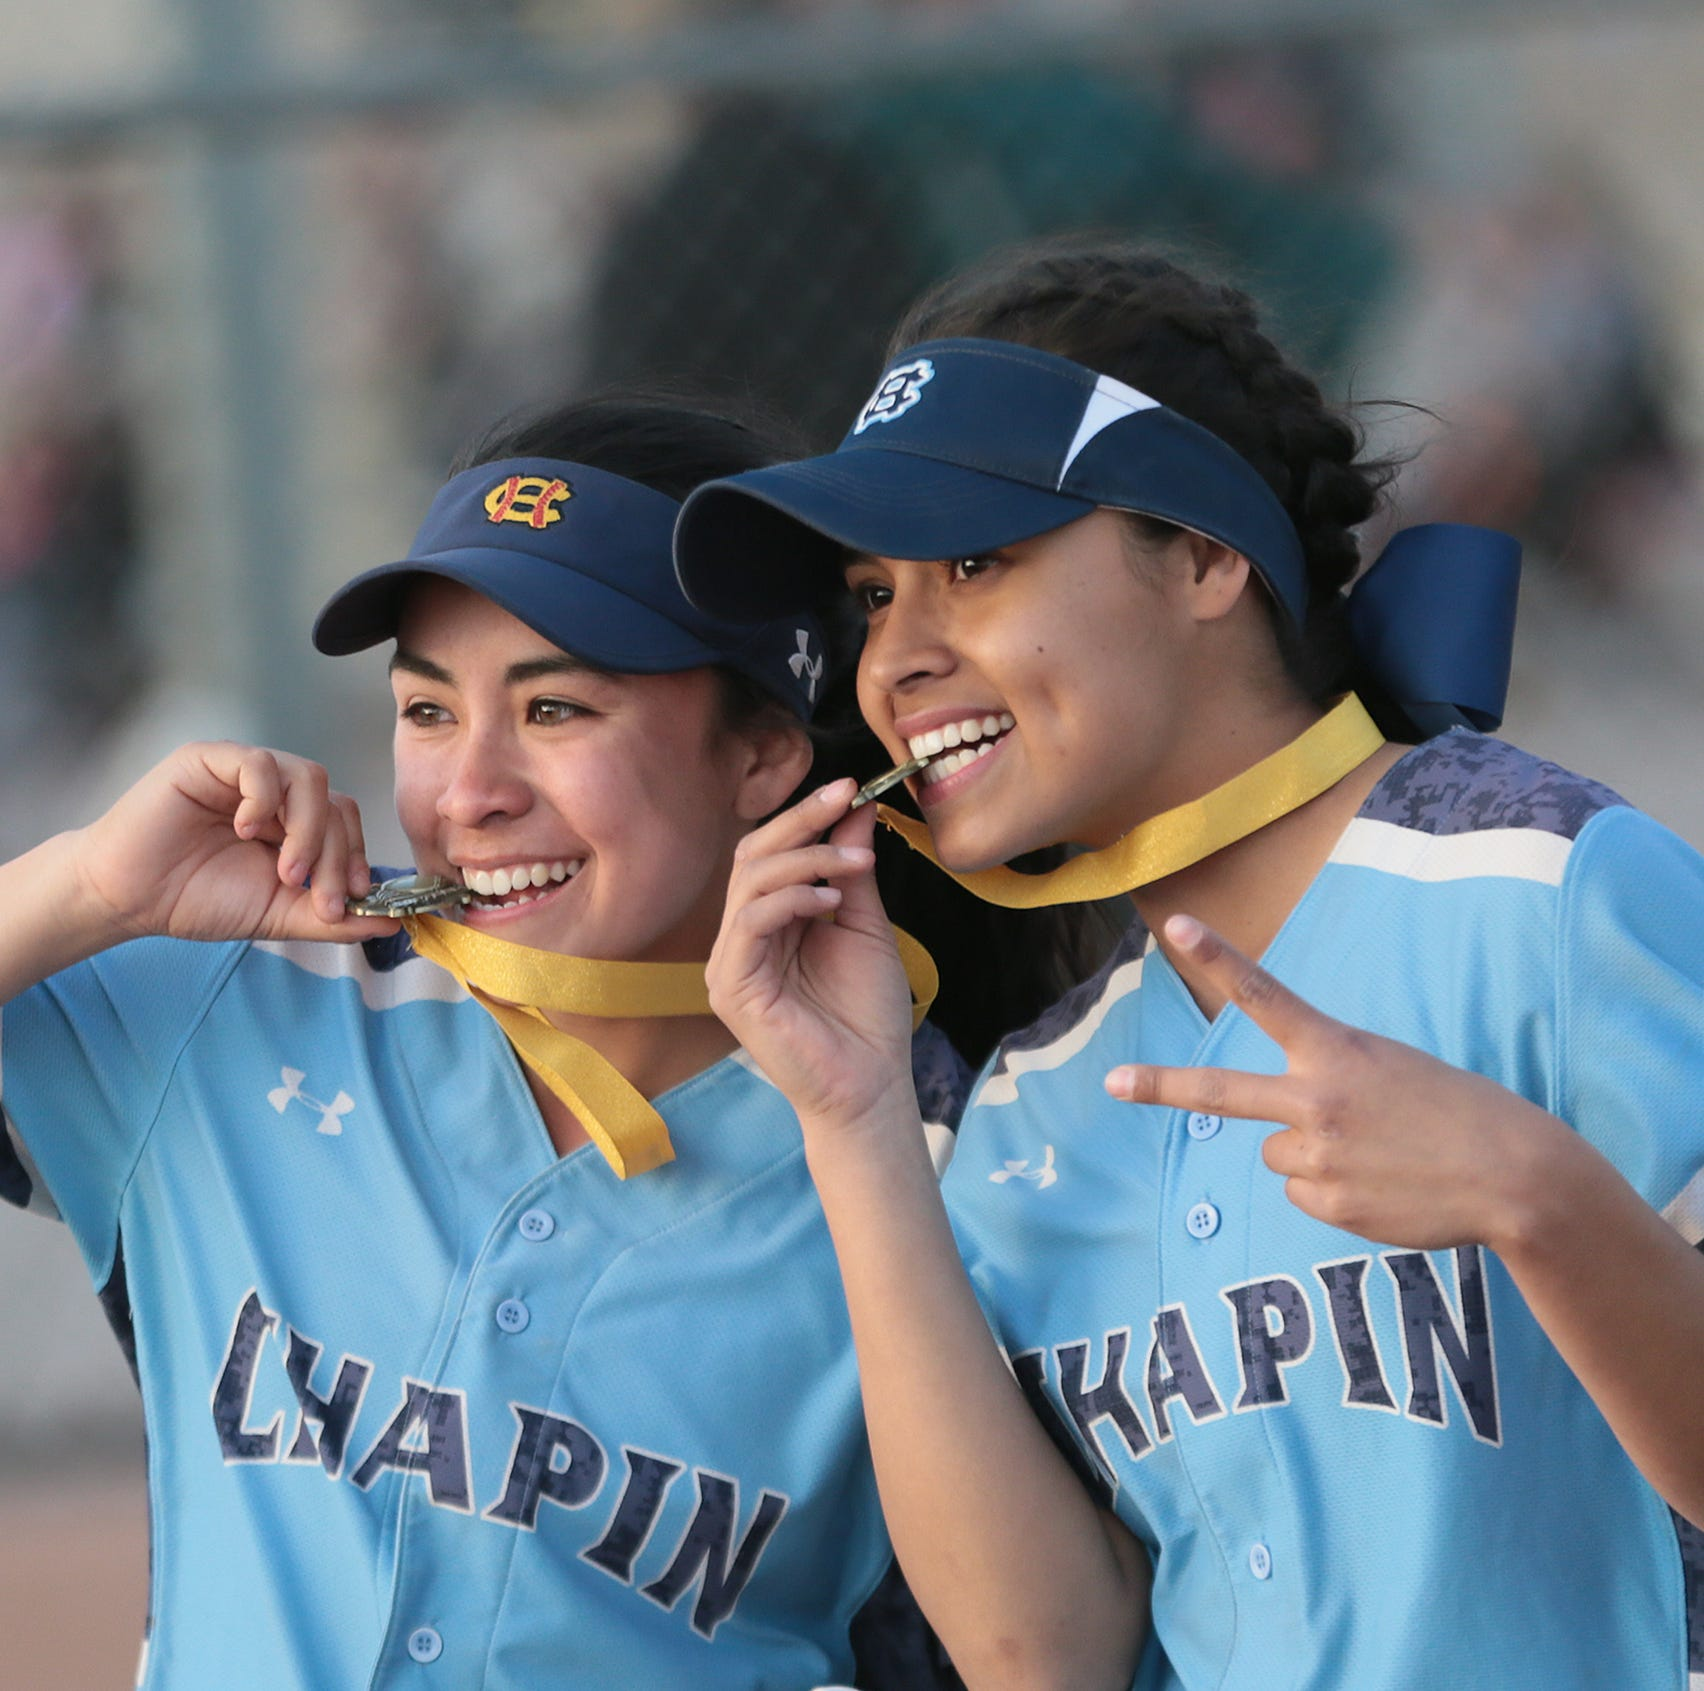 El Paso's Chapin High School softball team advances to Sweet 16 in playoffs